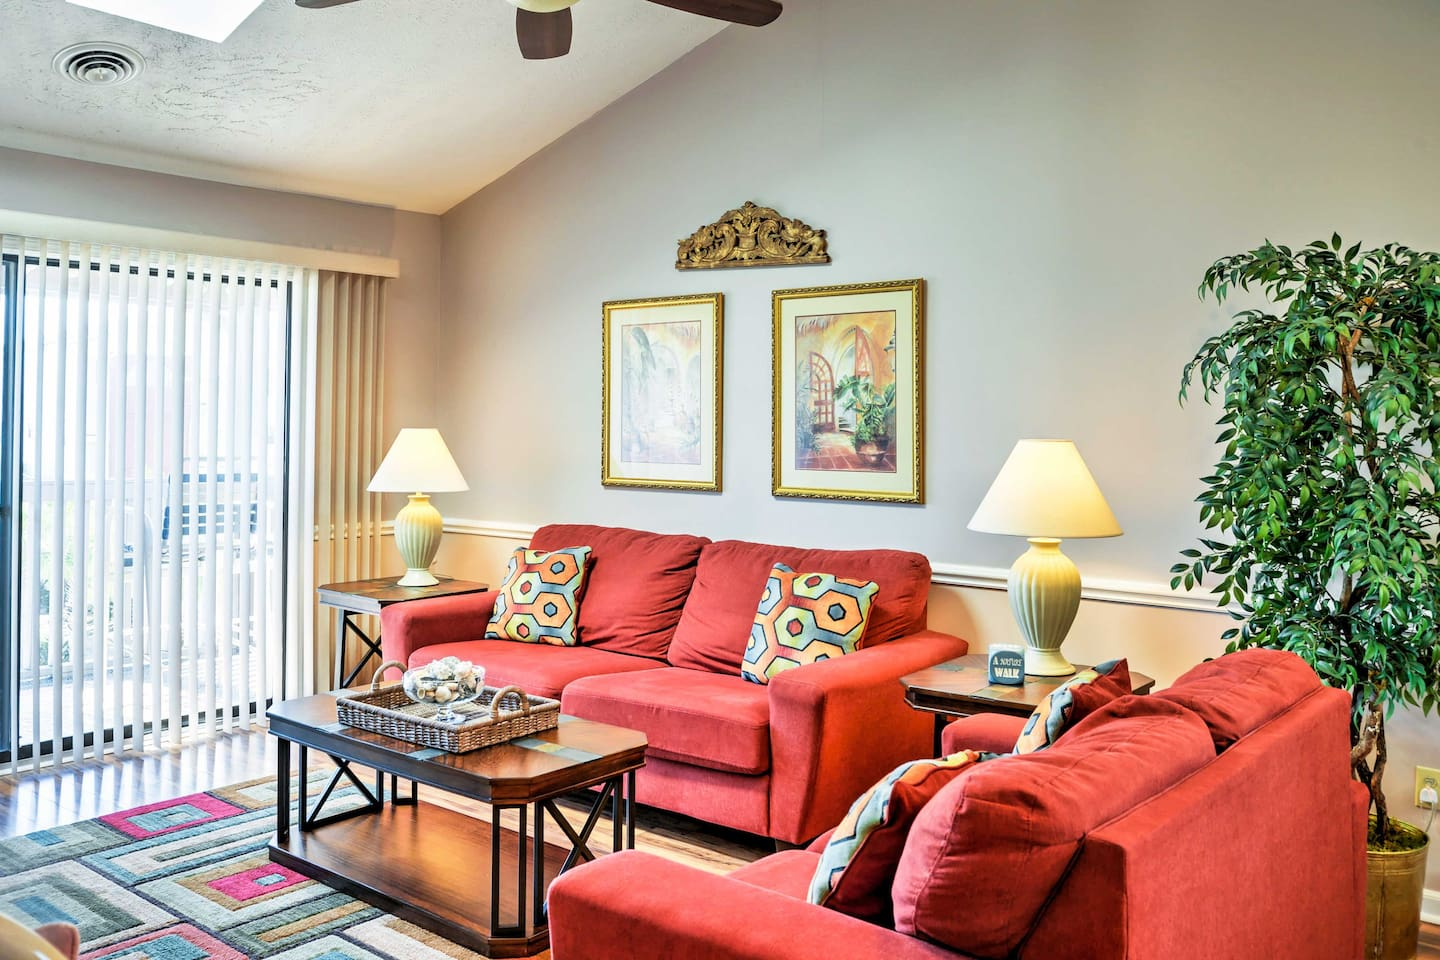 Escape to this 2-bedroom, 2-bathroom vacation rental condo in Surfside Beach!